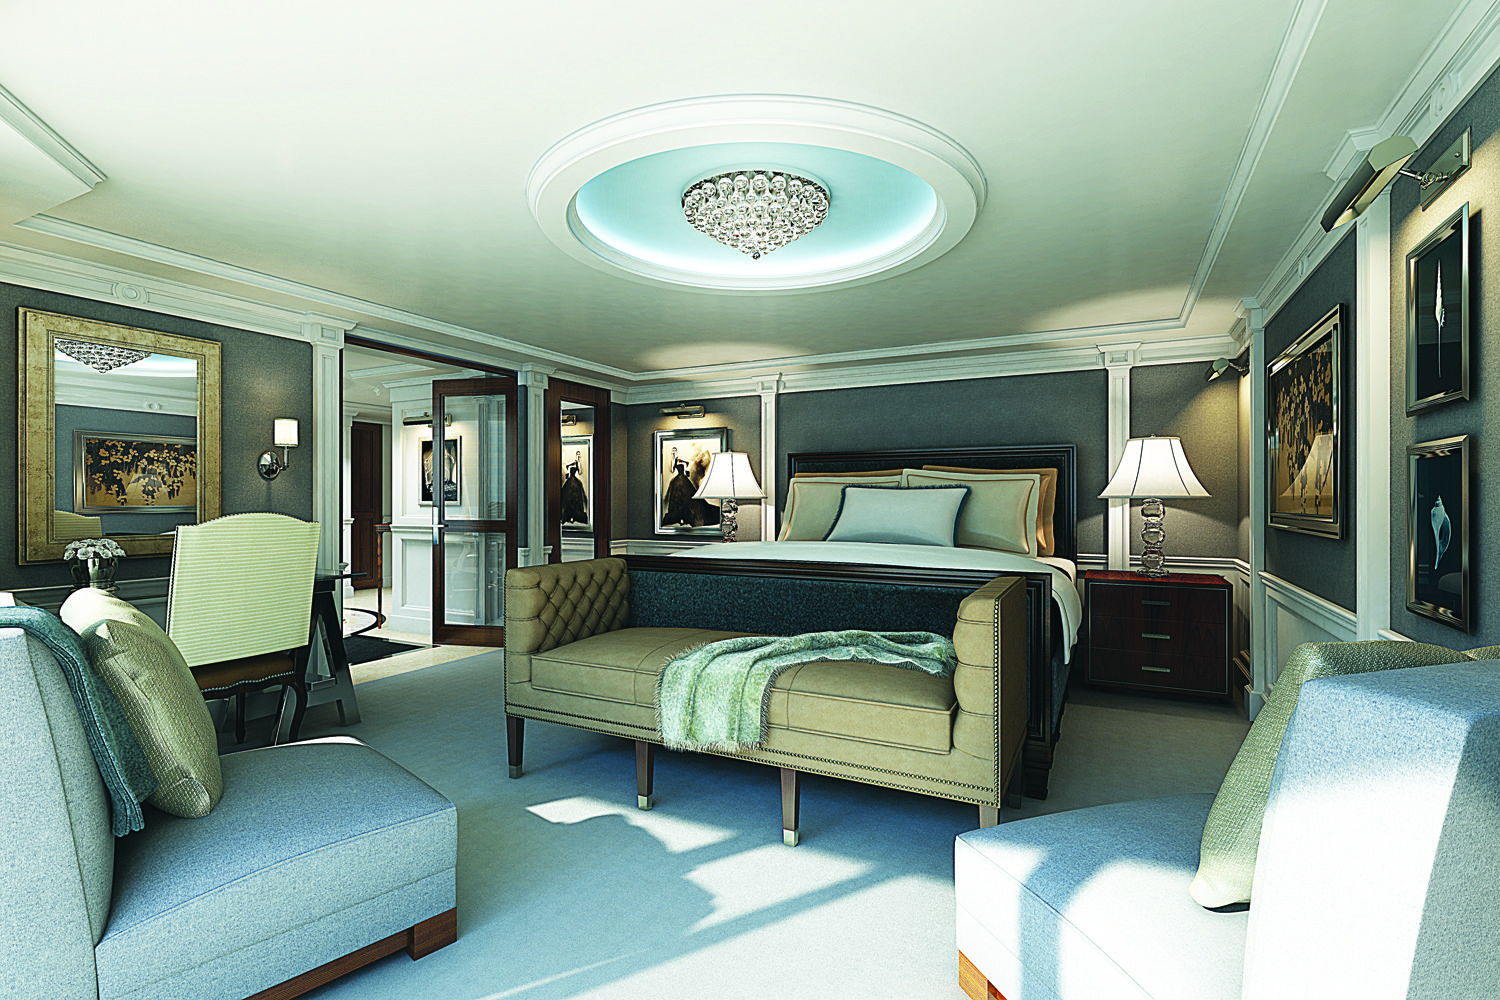 Master bedroom vs owners suite  The New Ownerus suite on Oceaniaus New Ship  Riviera Worldview